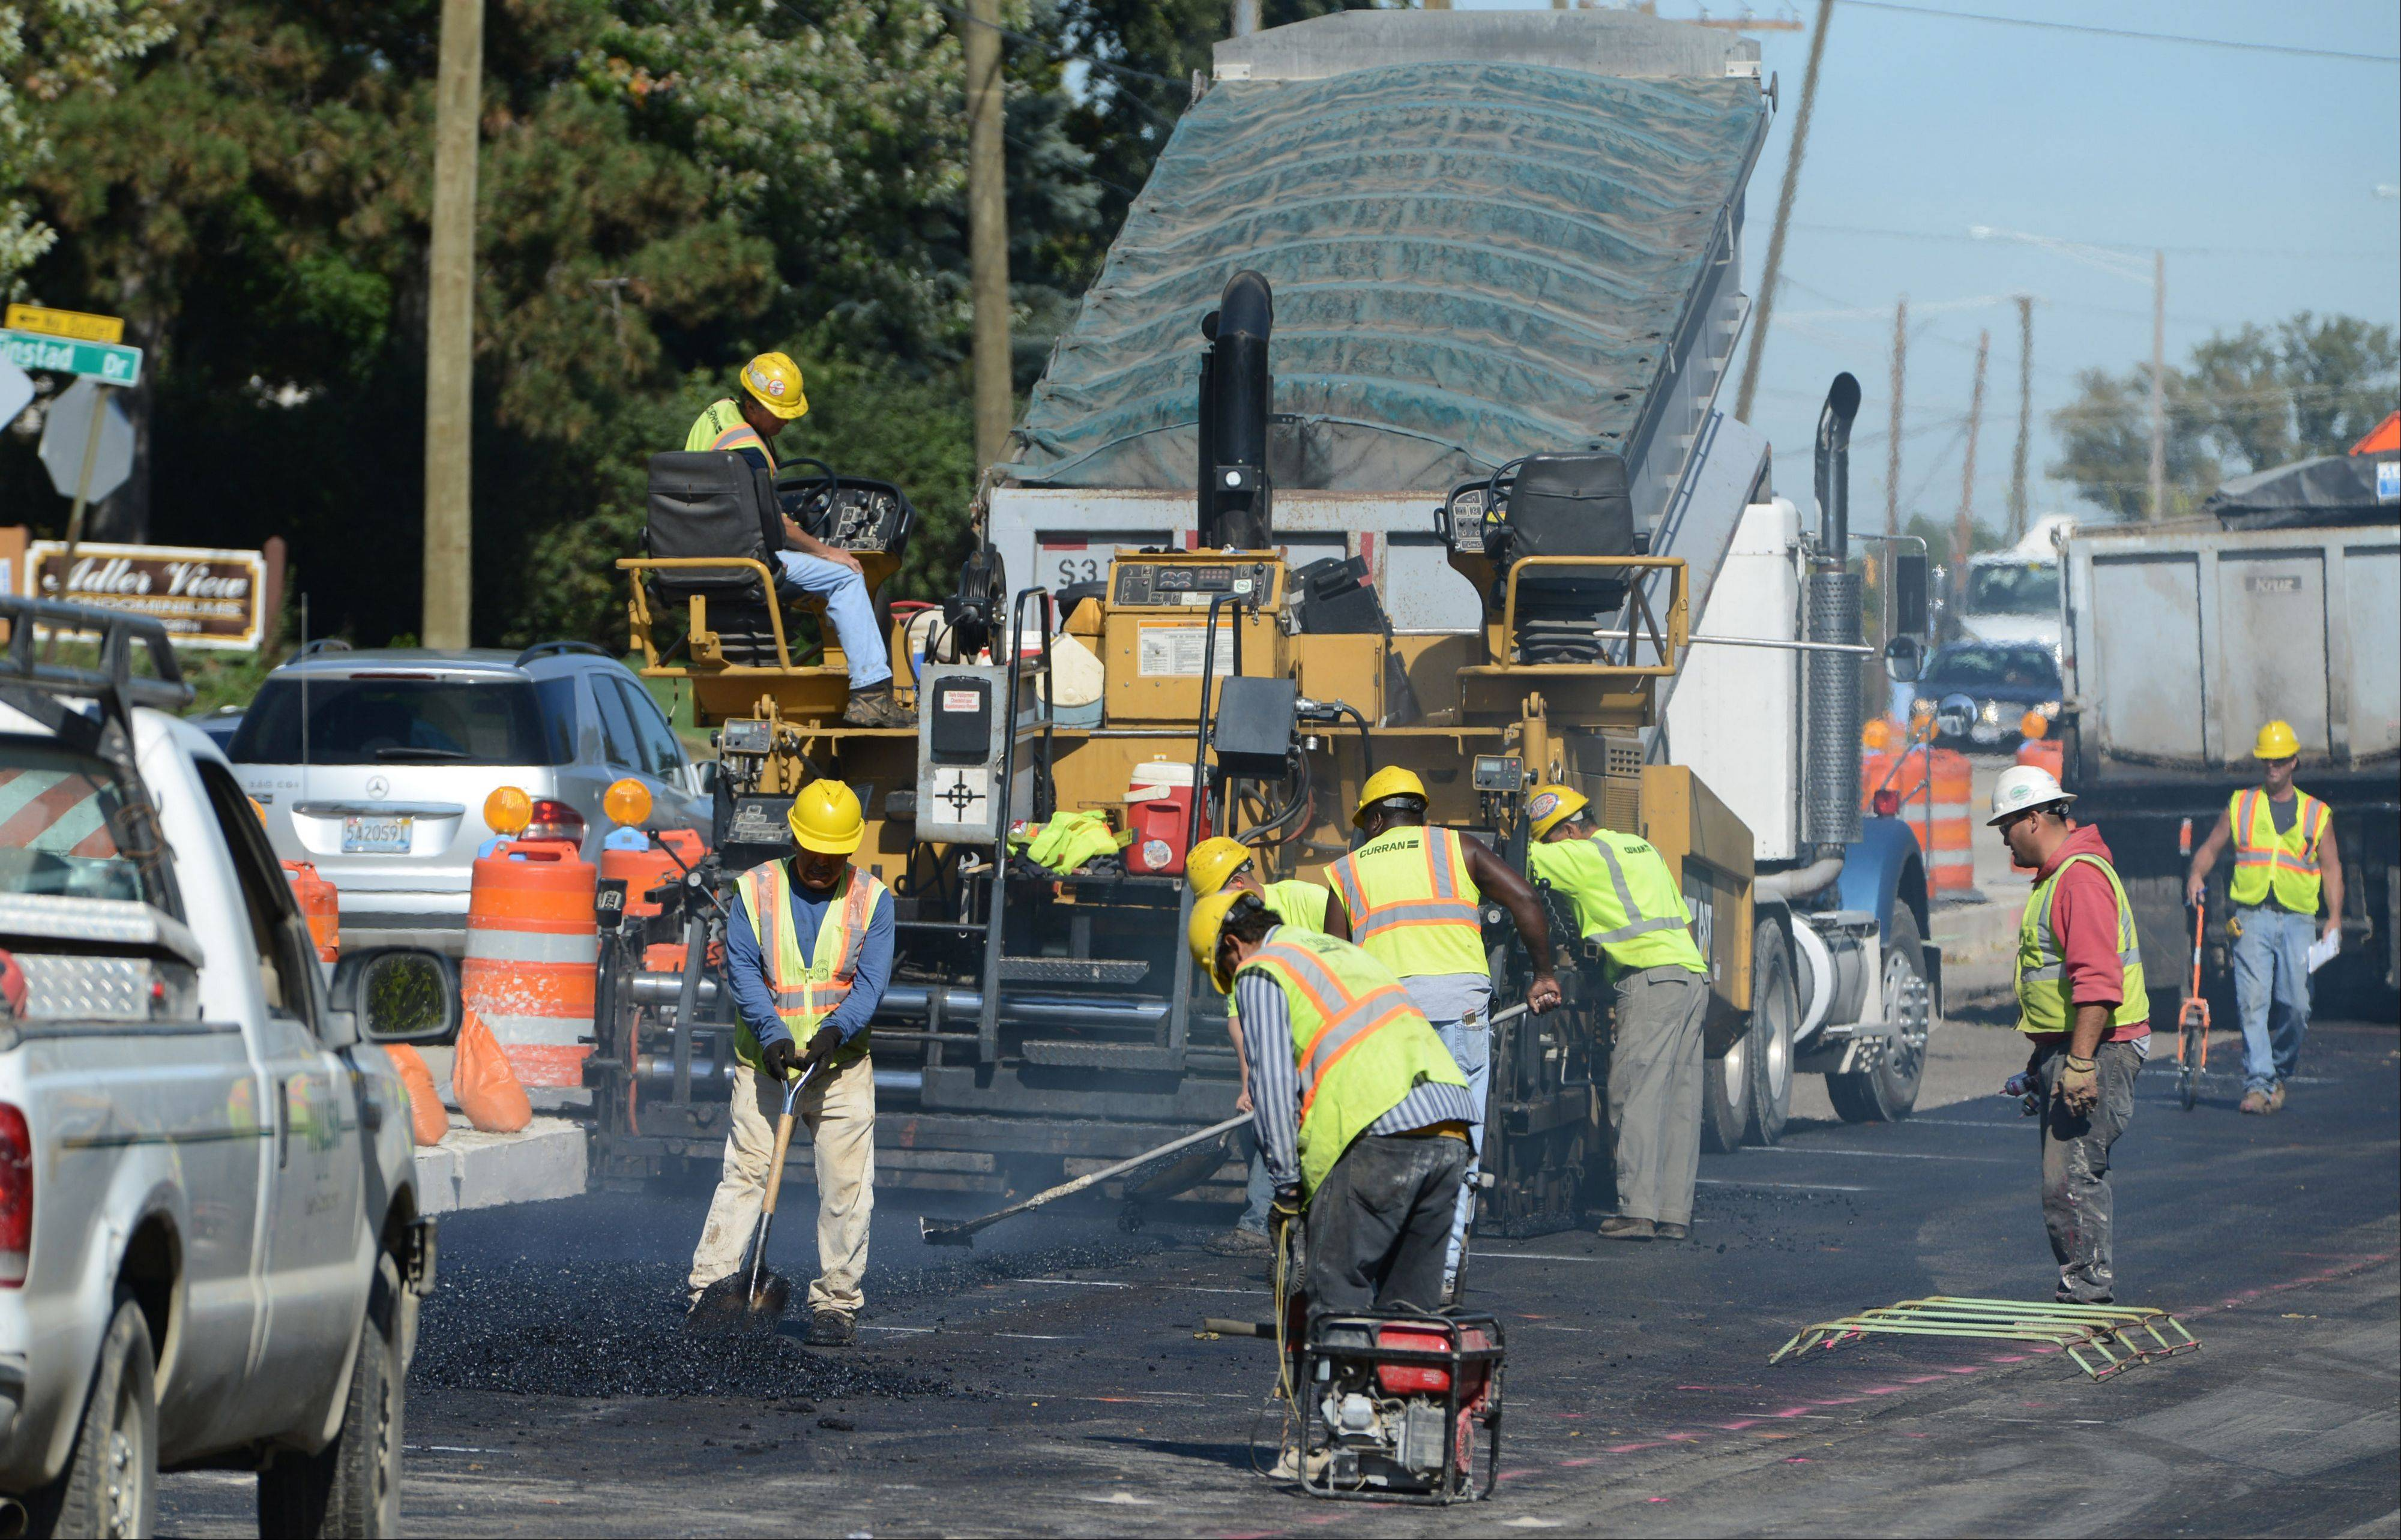 Crews pave a section of Milwaukee Avenue in Libertyville just south of Peterson Road (Route 137).